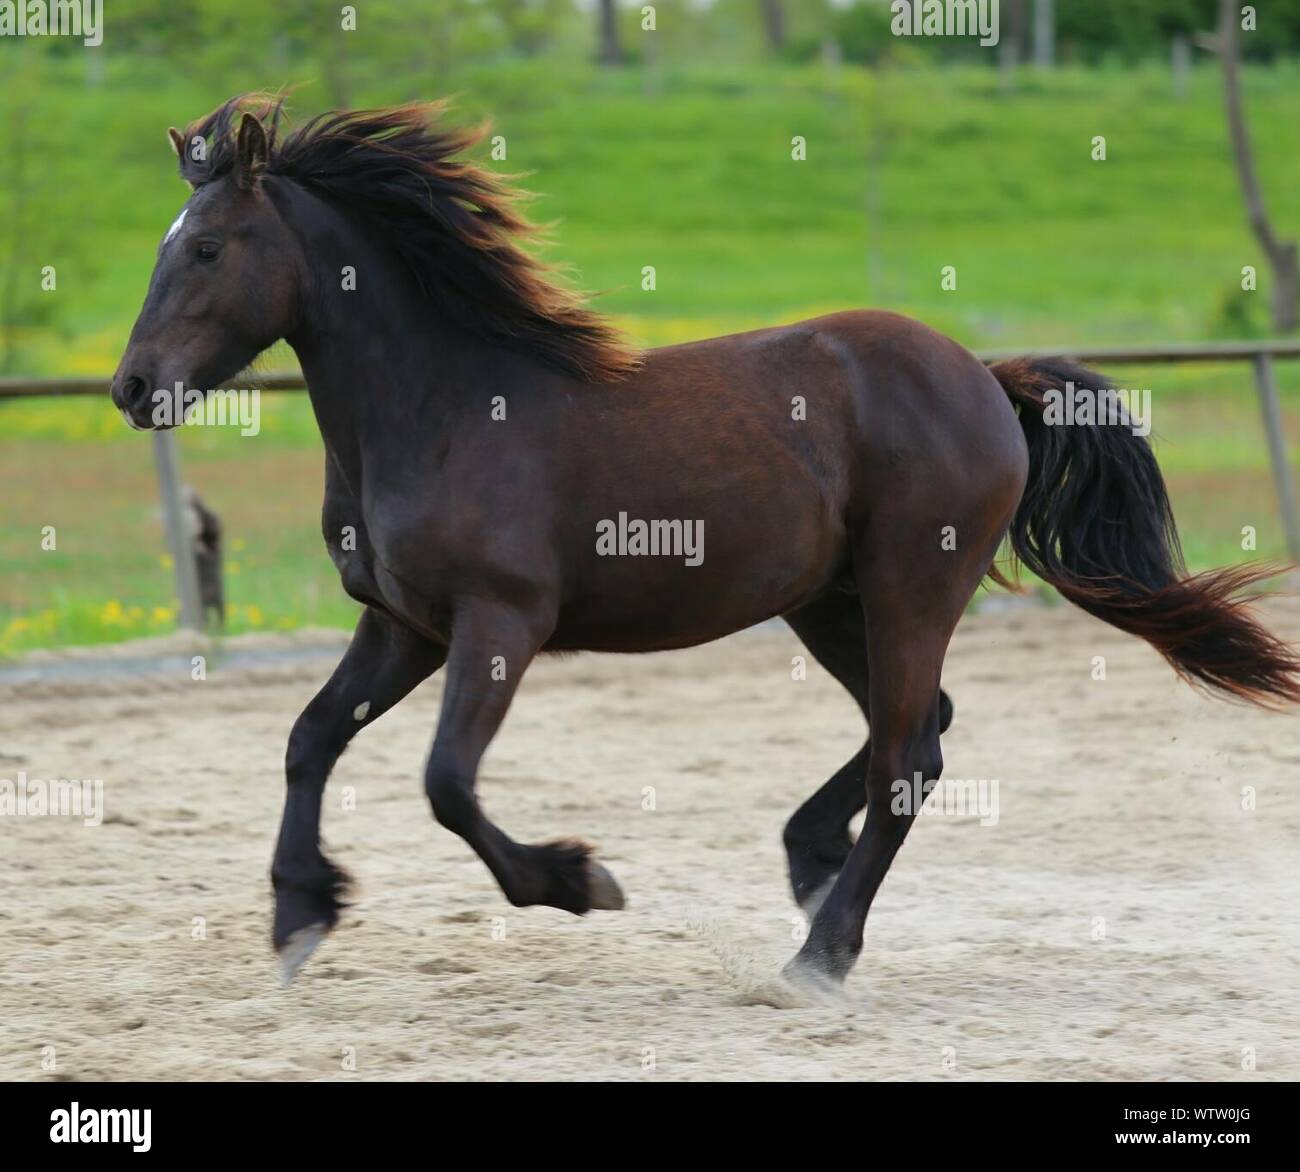 Side View Of Brown Horse Running In Ranch Stock Photo Alamy